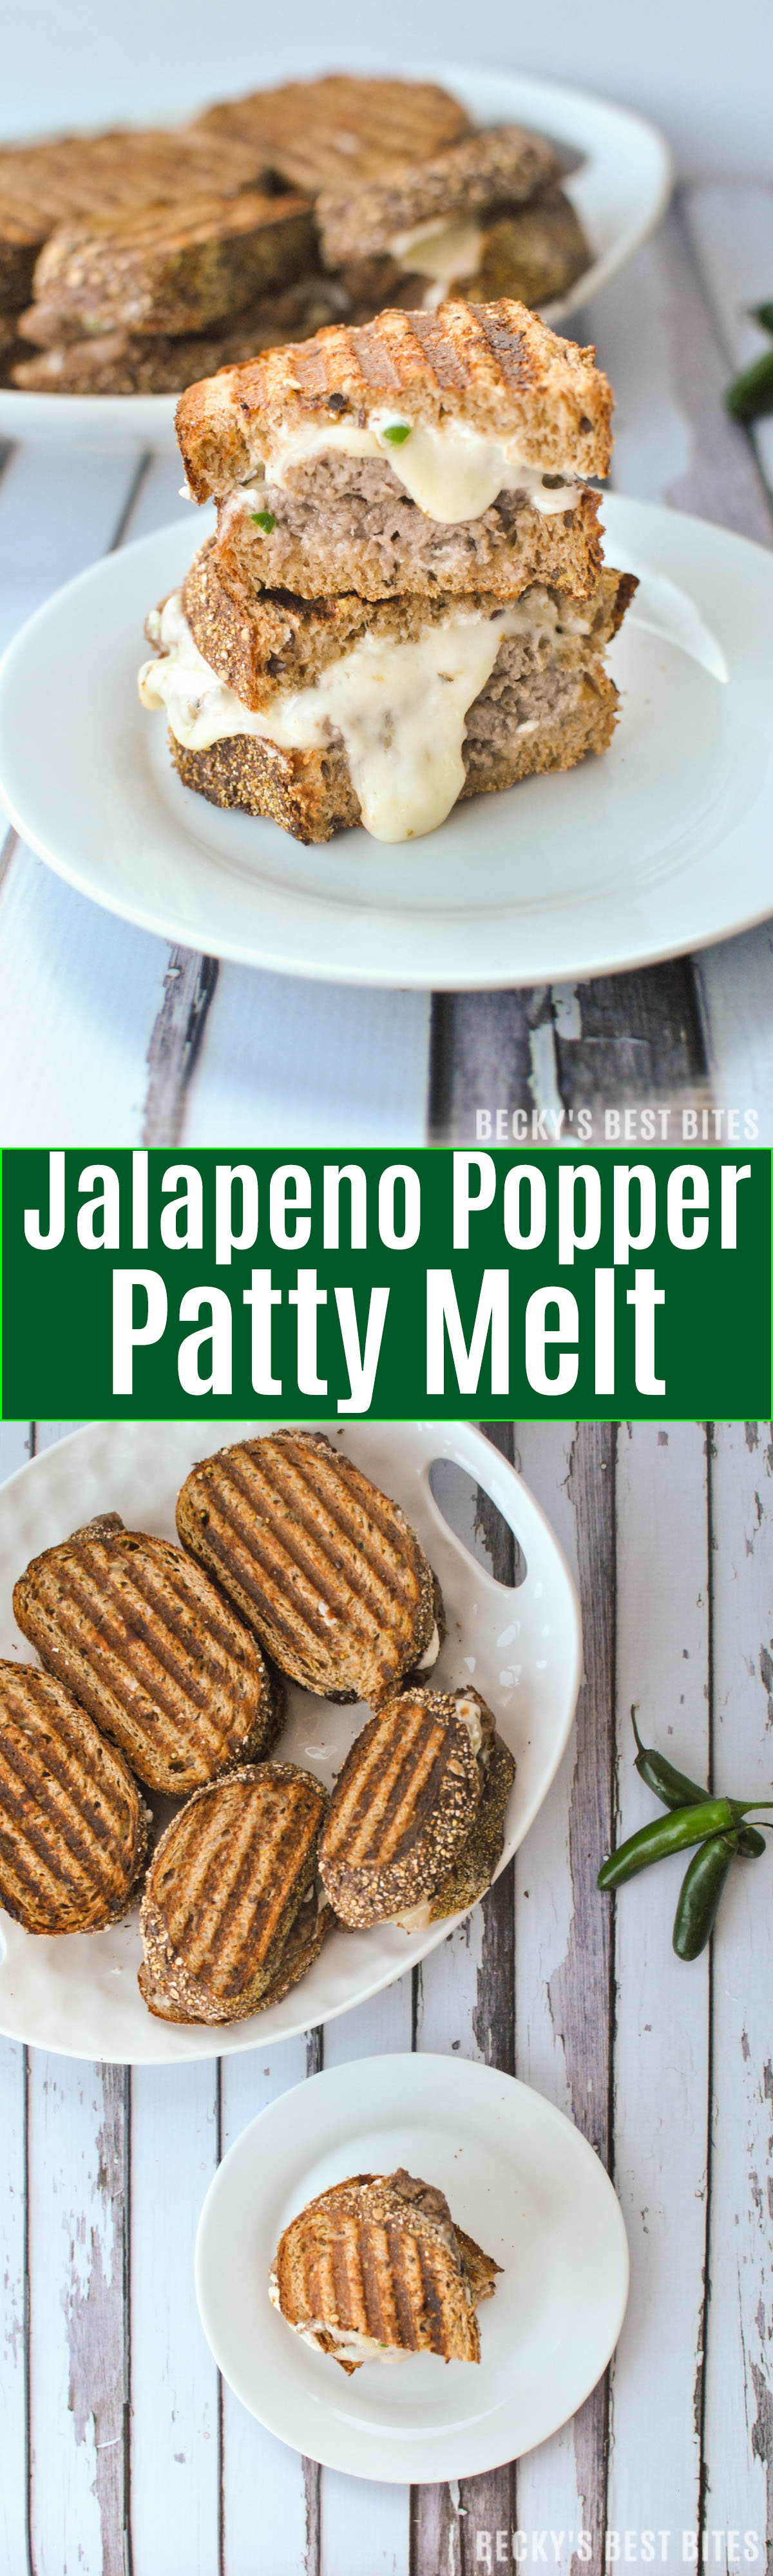 Jalapeño Popper Patty Melt feature jalapeños, cream cheese, greek yogurt, parmesan cheese, whole grain bread, beef & melty cheese for a quick lunch or dinner recipe that guys on the go can enjoy! | beckysbestbites.com